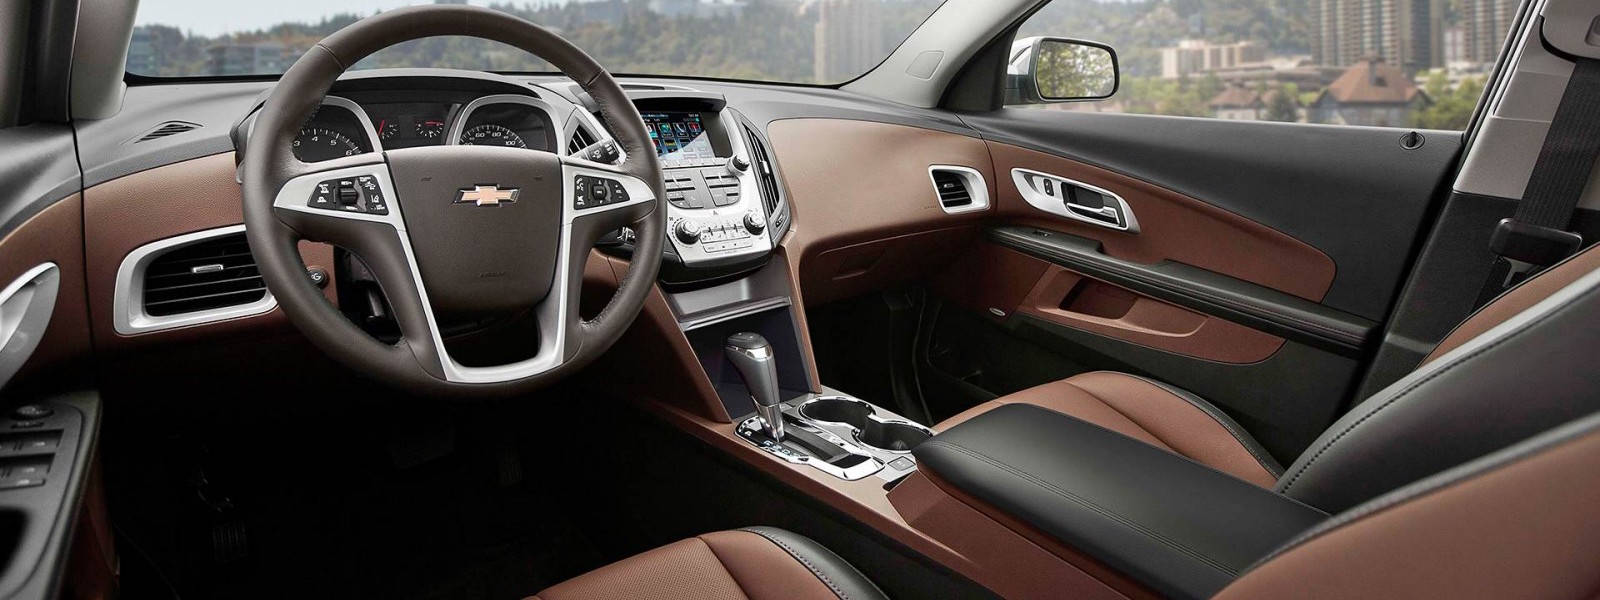 The black and brown interior of a 2016 Chevy Equinox is shown.